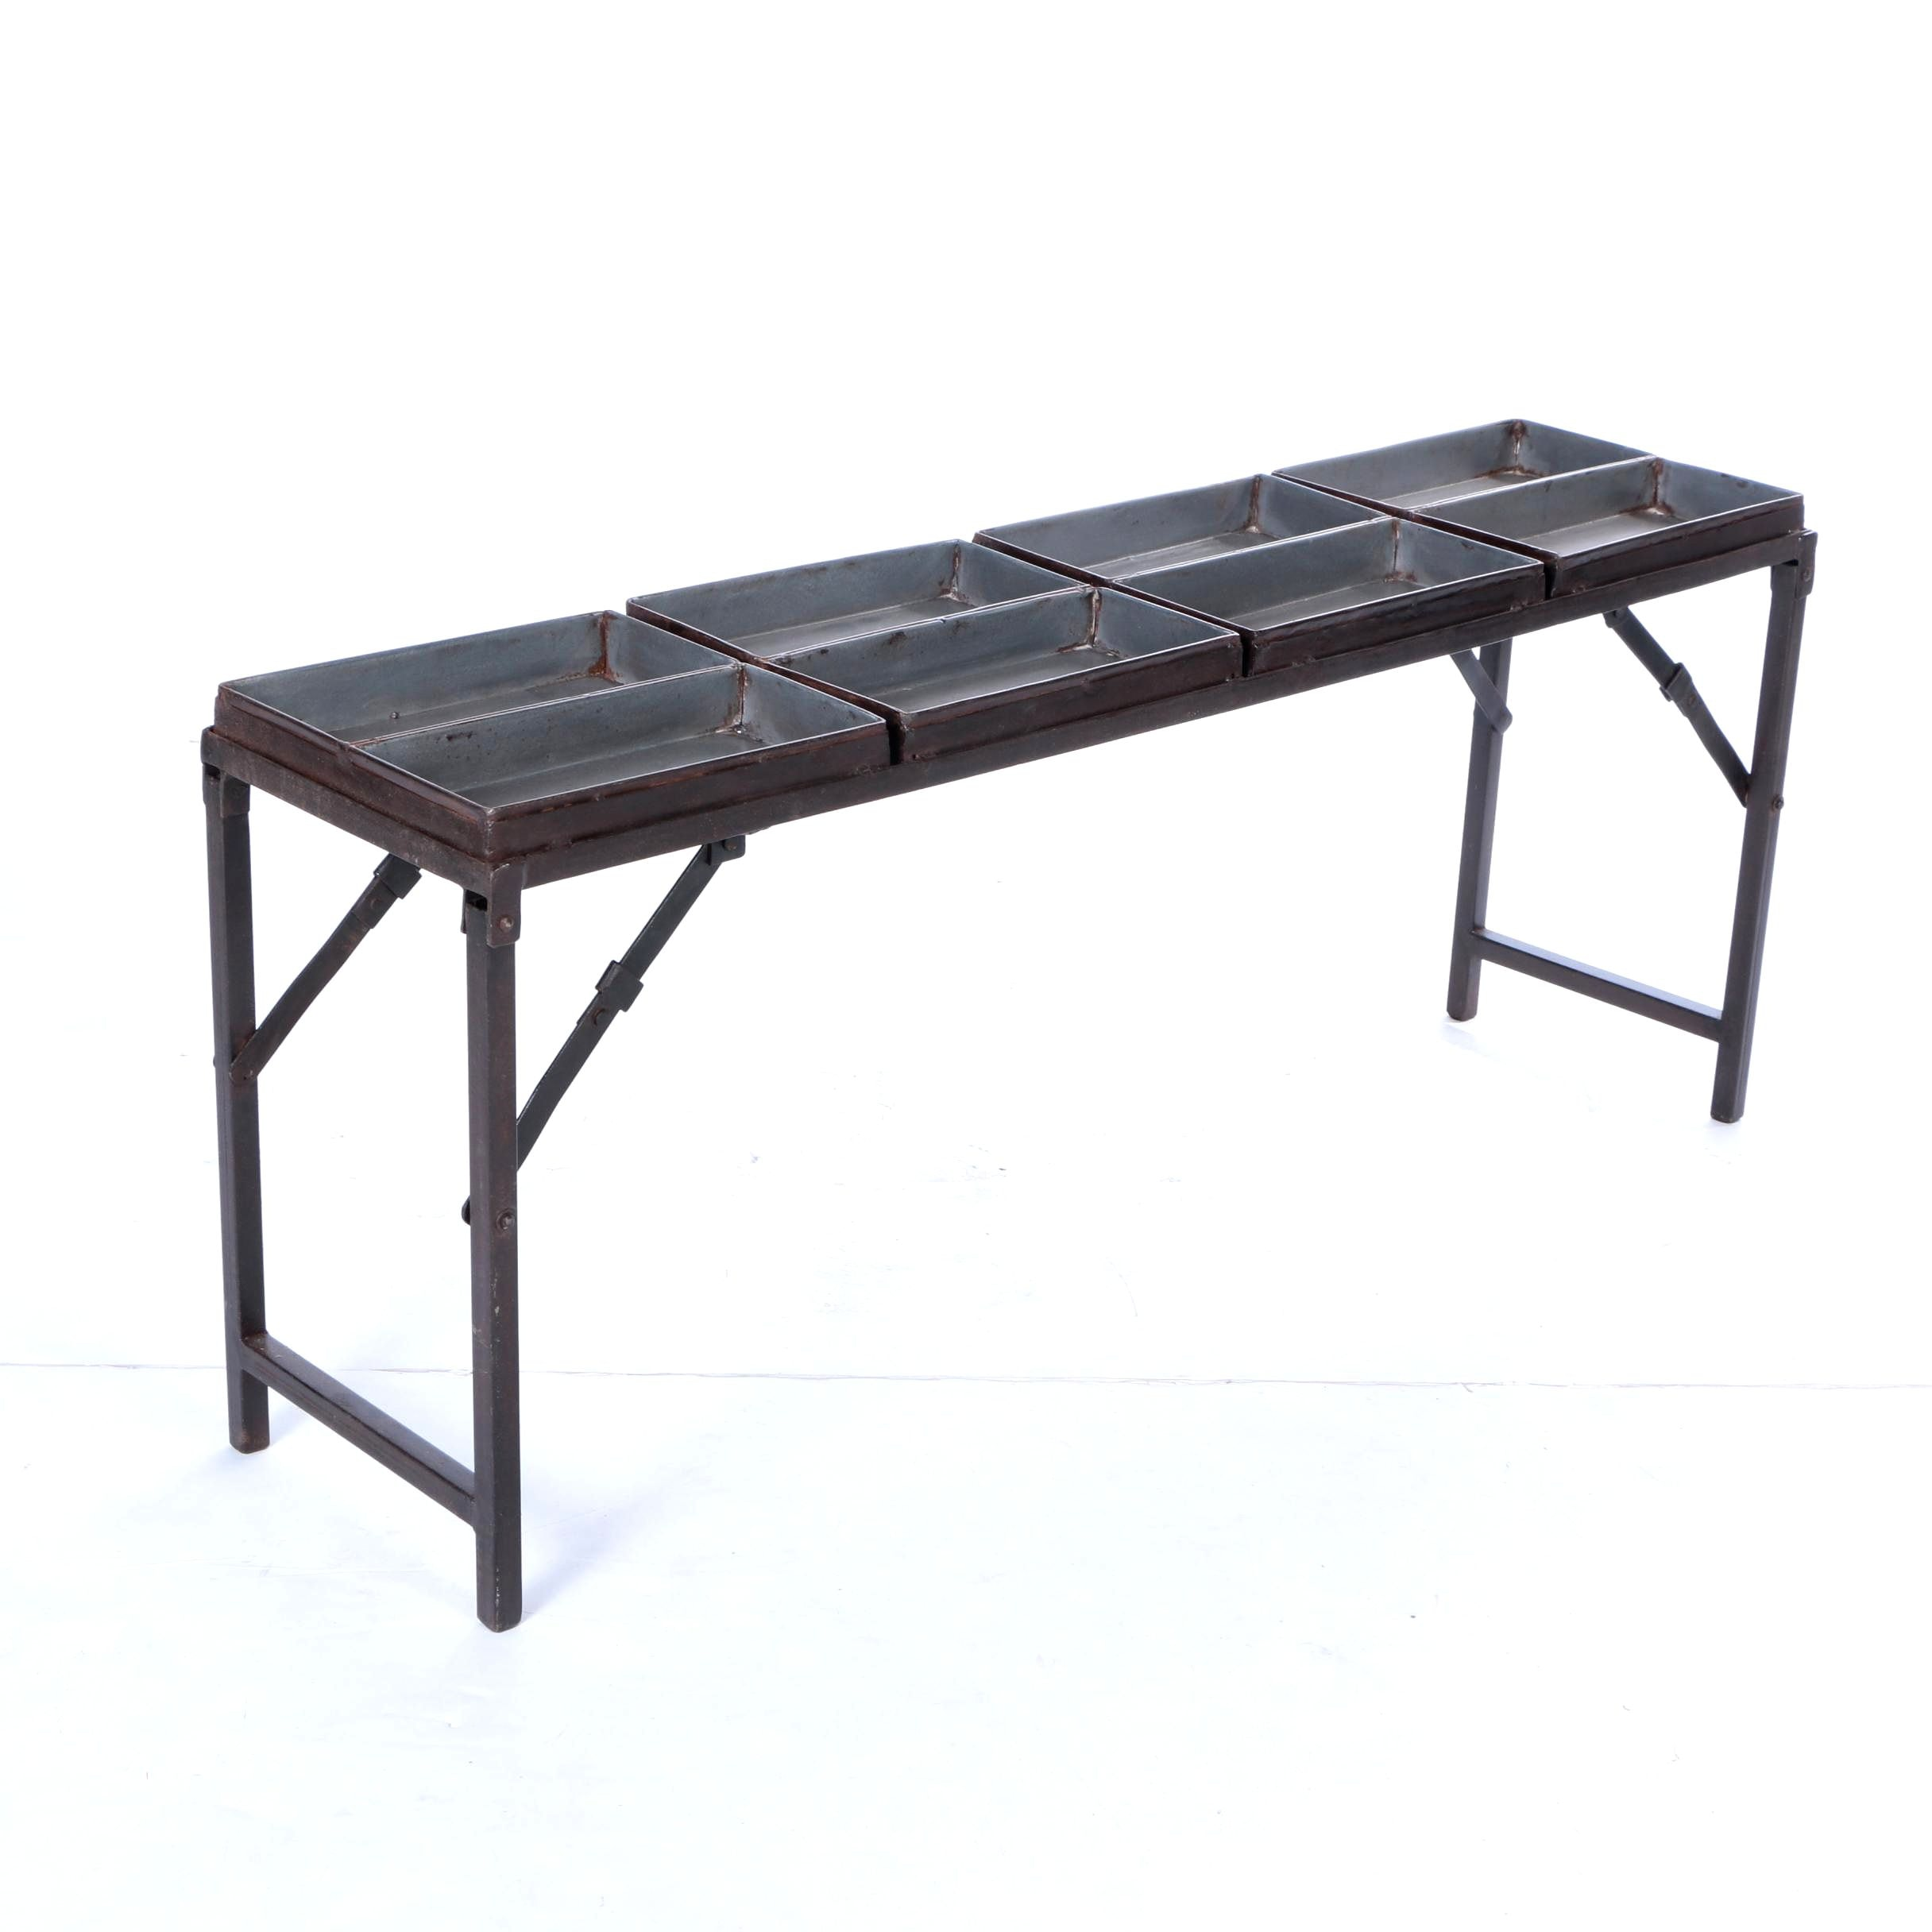 Contemporary Folding Metal Table with Bins EBTH